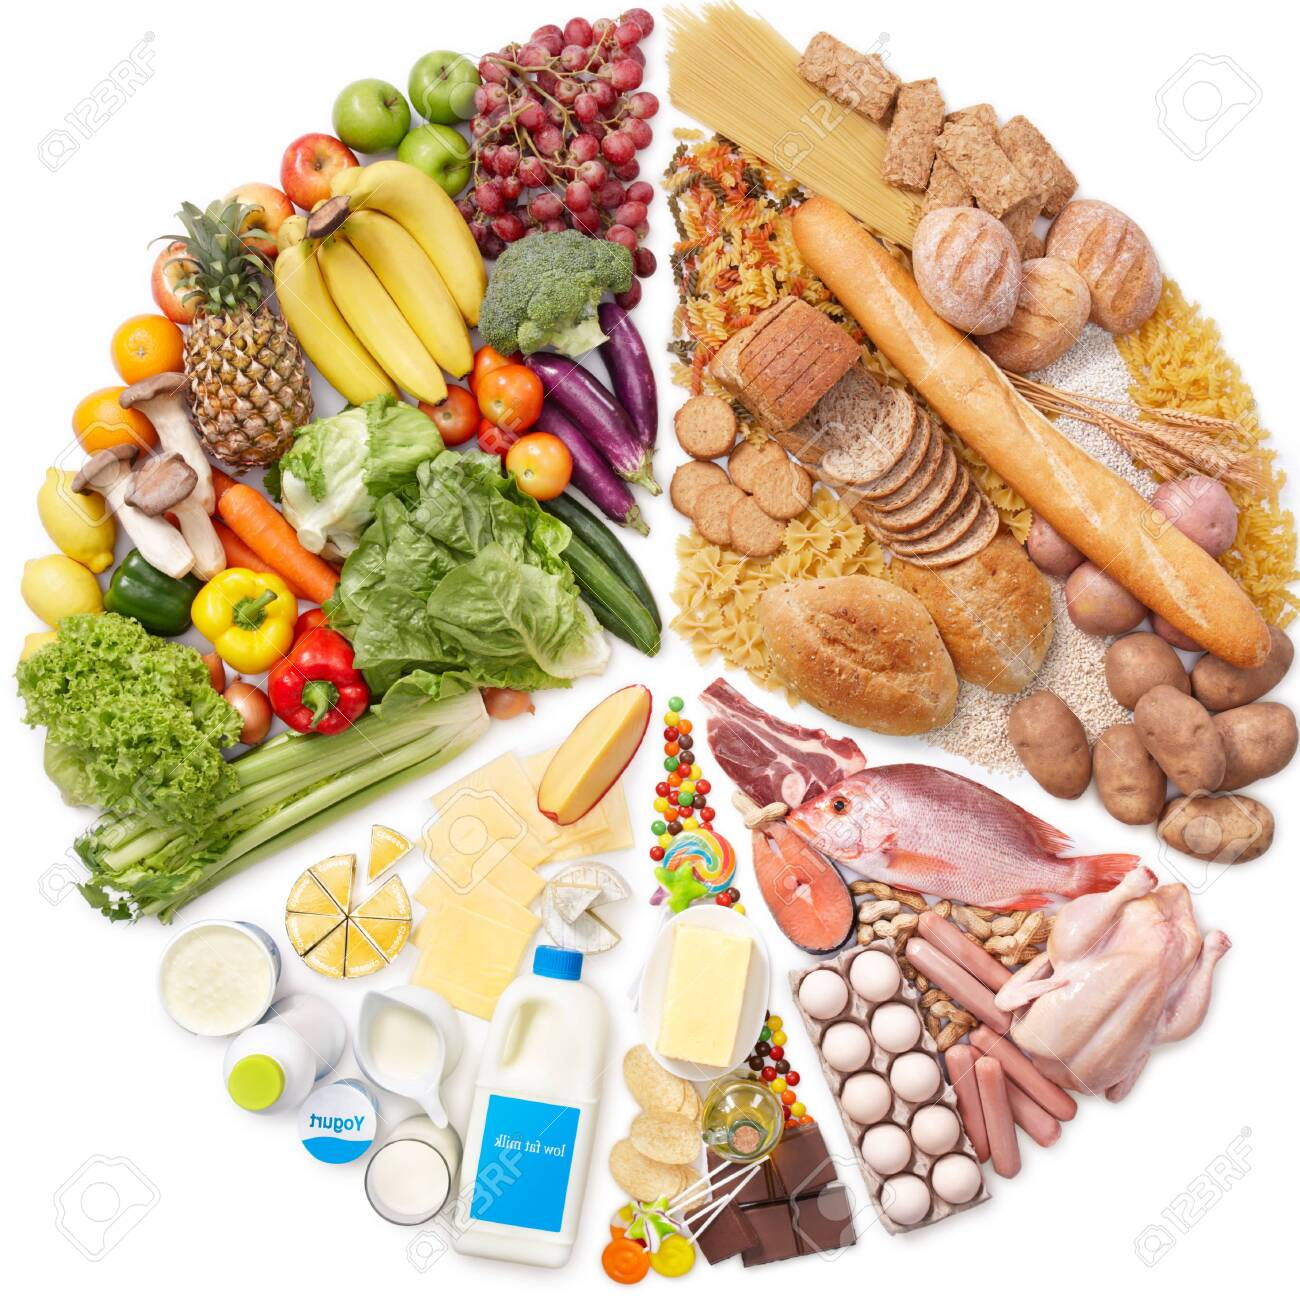 Set Of Food Calories Proper Nutrition Carbohydrates Protein Stock Photo Picture And Royalty Free Image Image 130188038